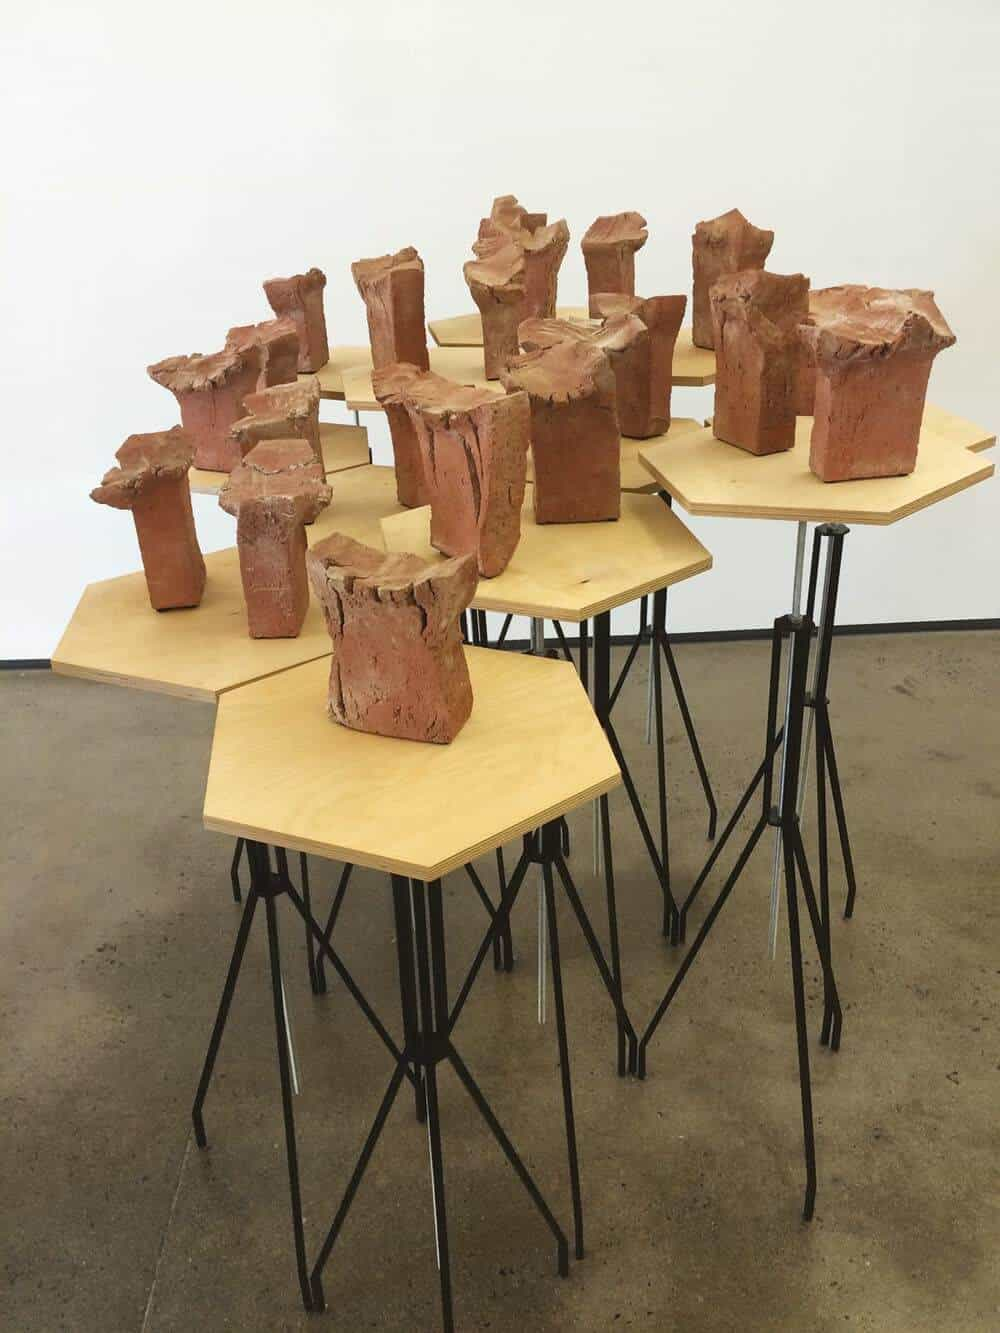 Paul Edmunds, Sames, 2014. Brick clay and hardware, Dimensions variable. Image courtesy of the artist.